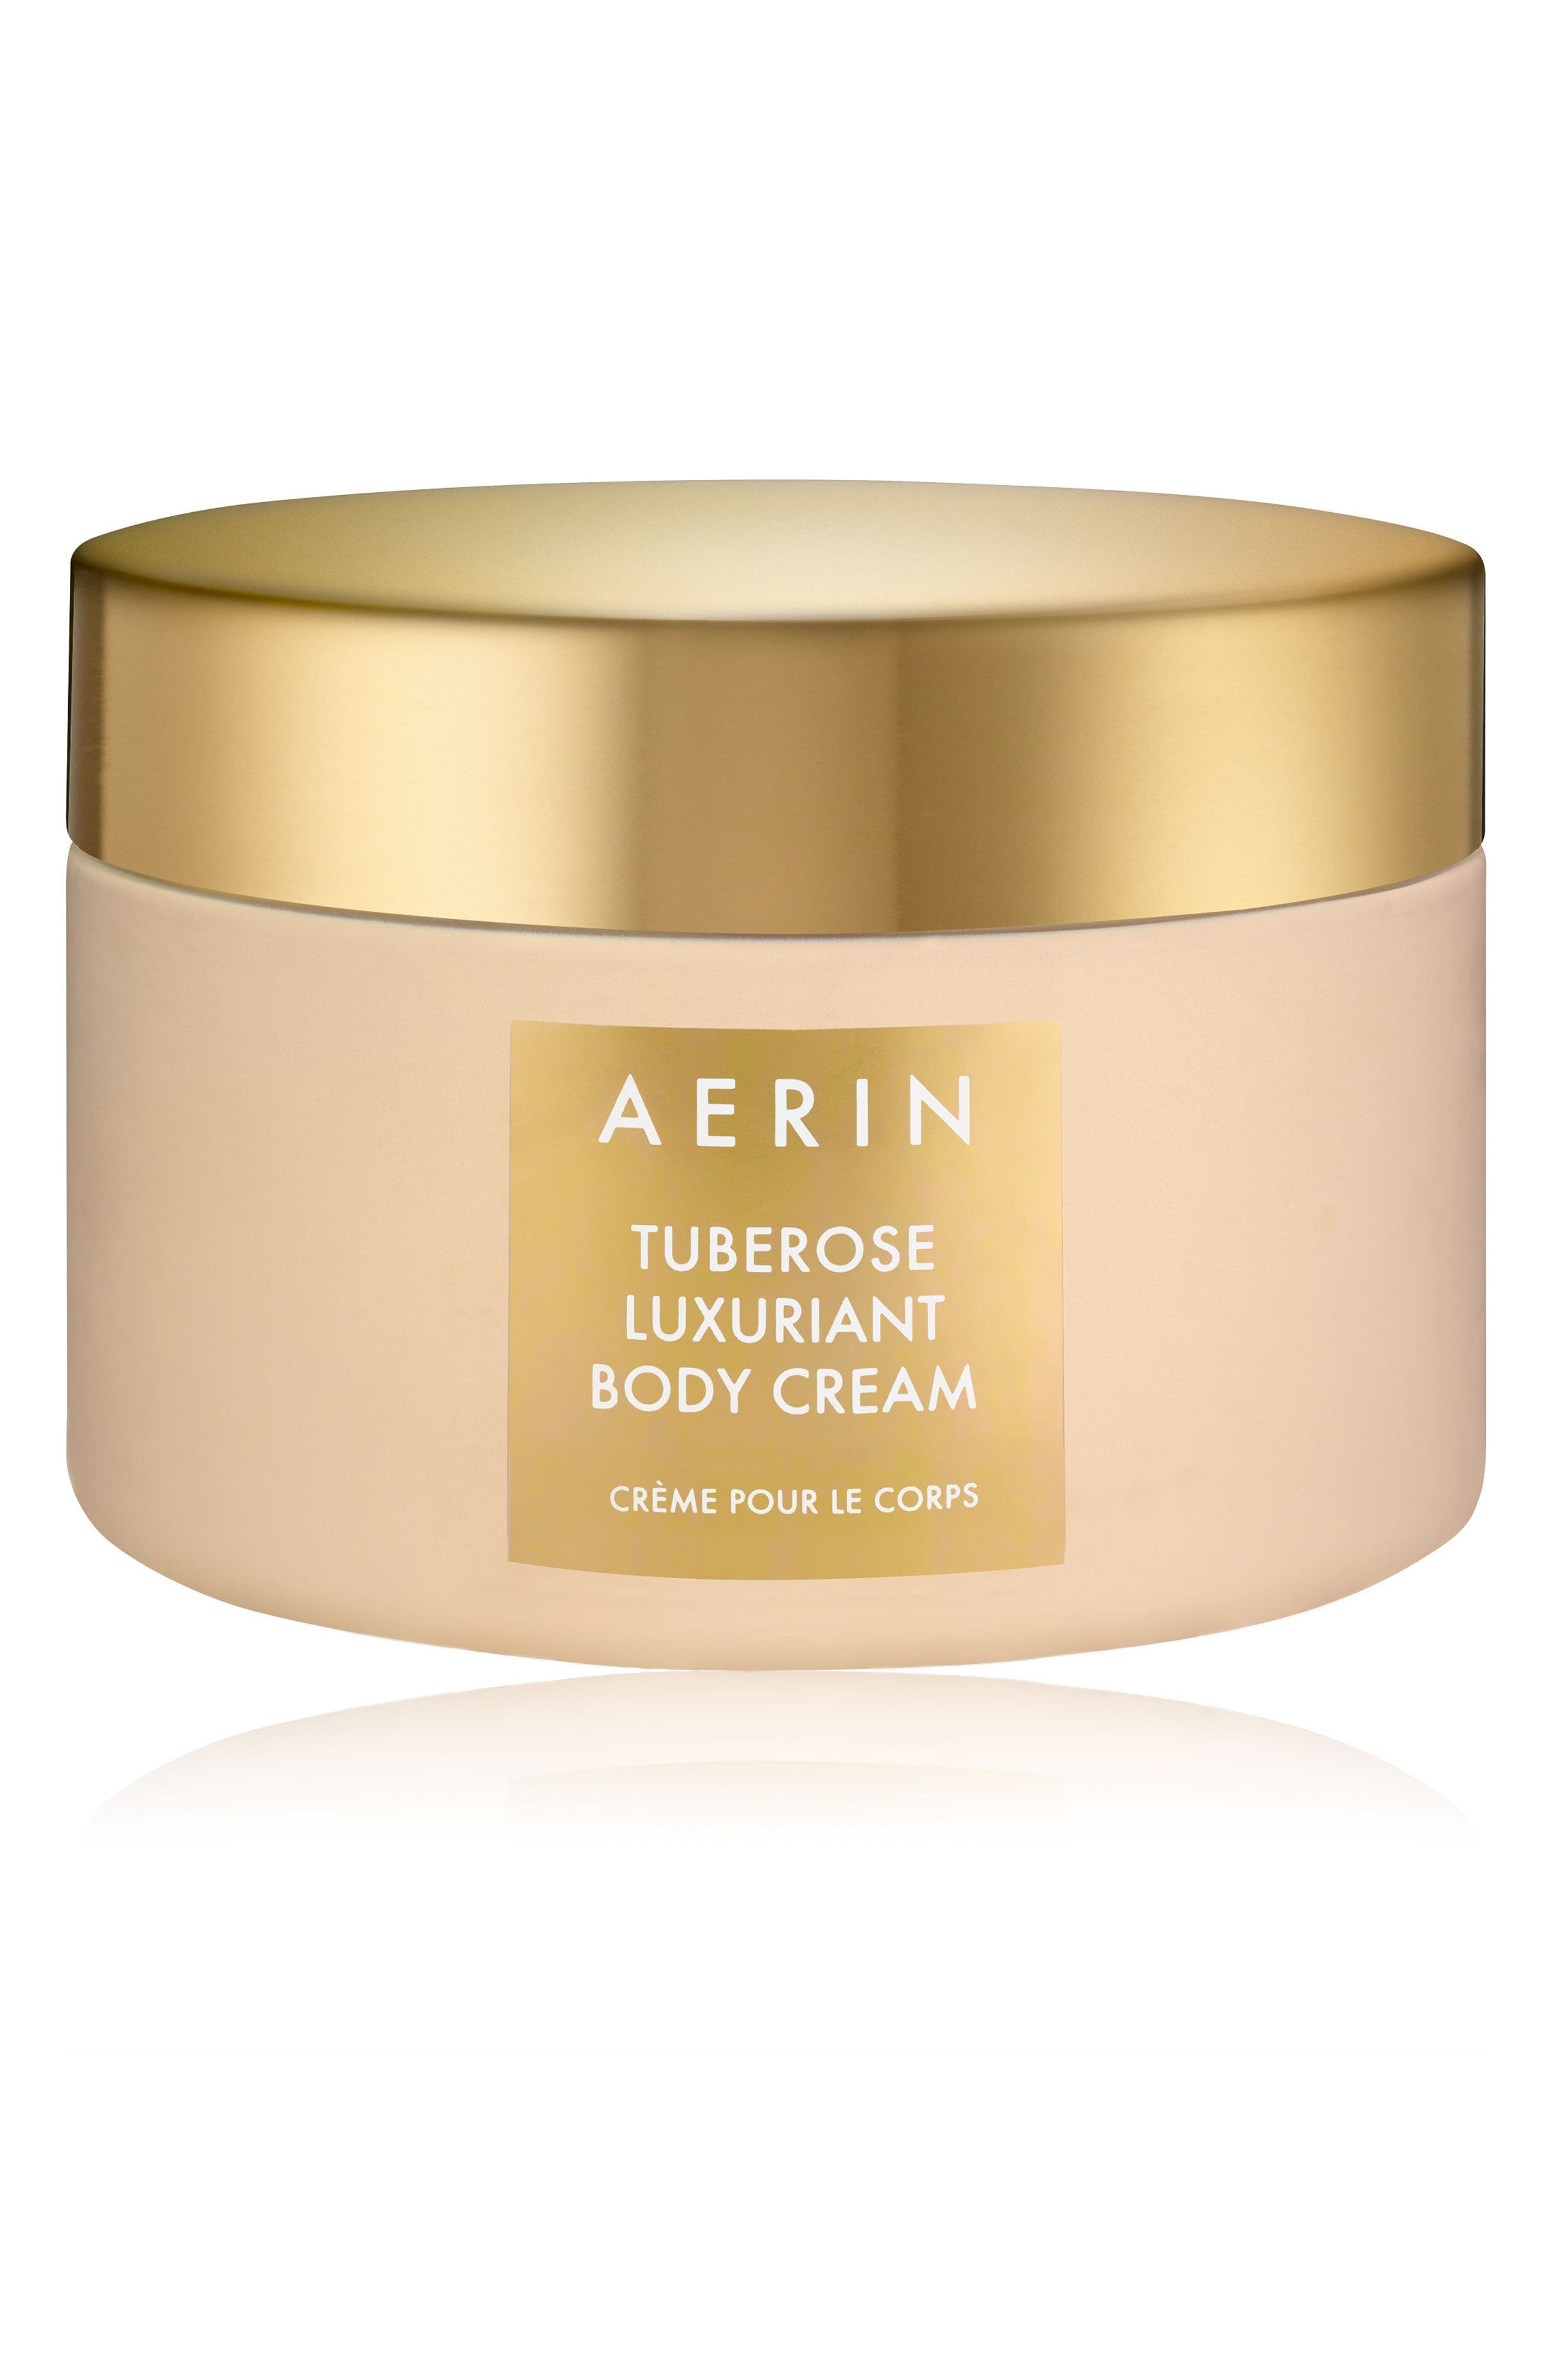 AERIN Beauty Tuberose Luxuriant Body Cream,                             Main thumbnail 1, color,                             No Color